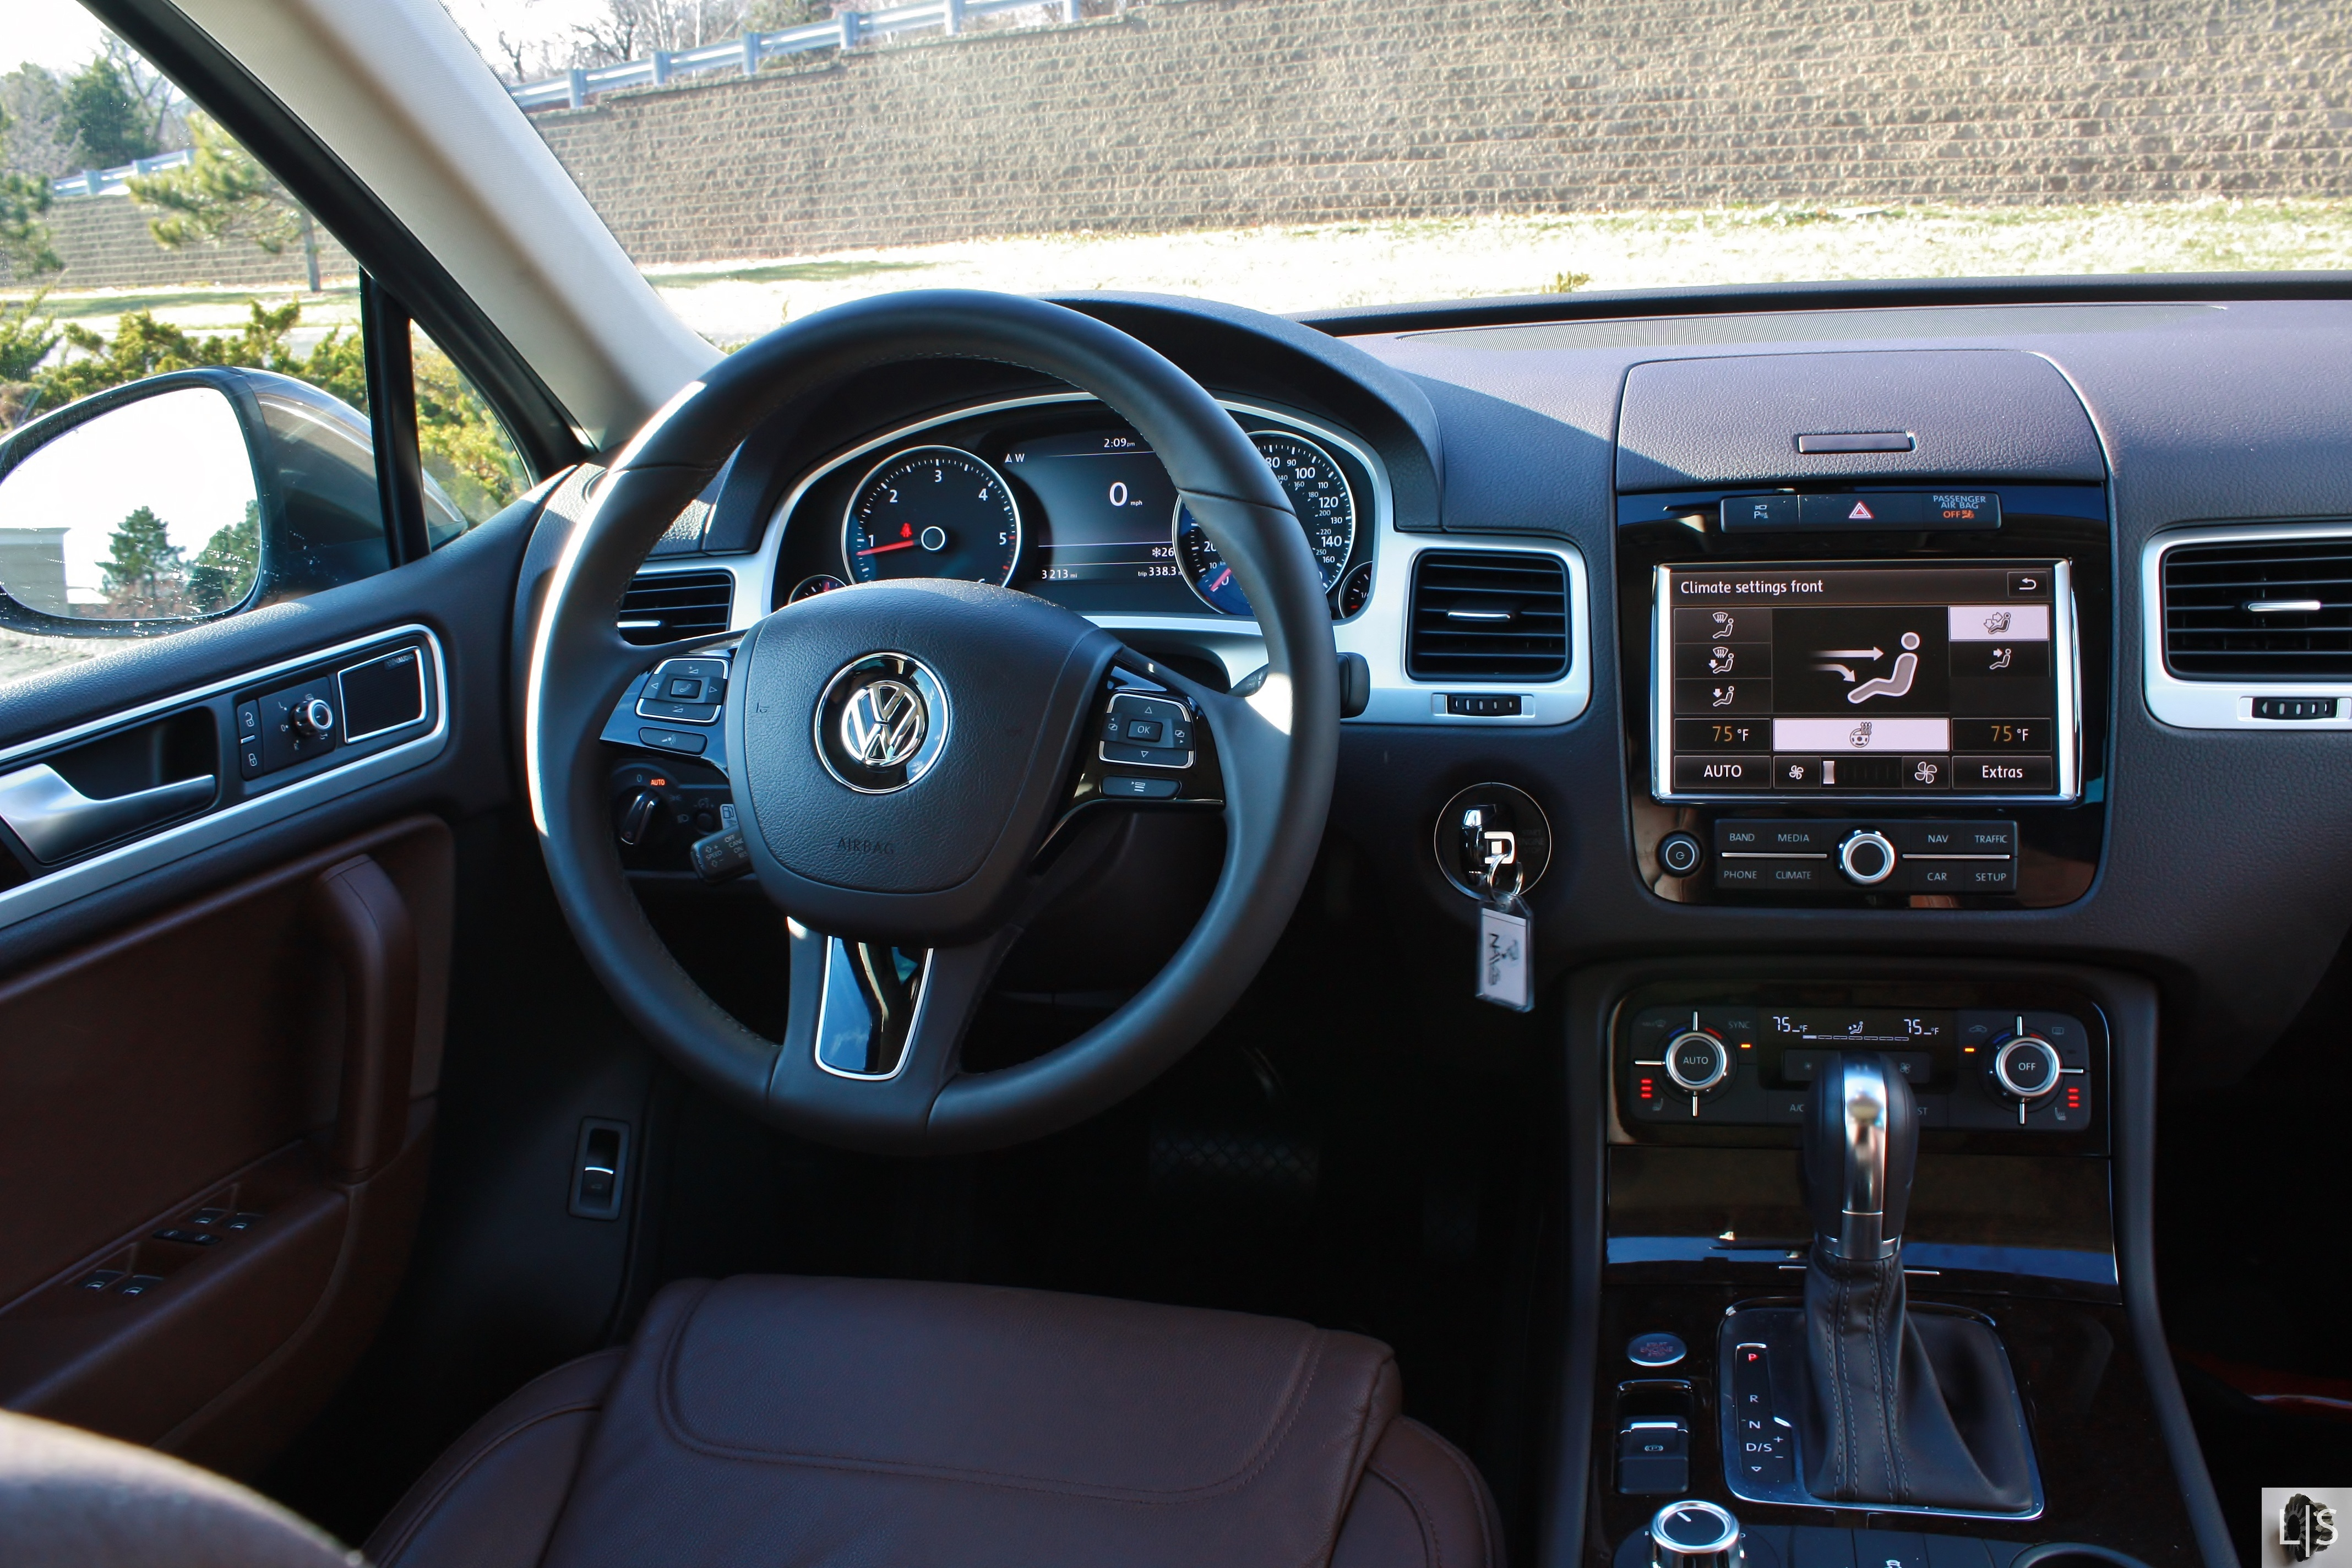 a will rear flat seats blog versatility with touareg suv vehicle is space this volkswagen ghnj crossover folded the of cargo versatile provide very you